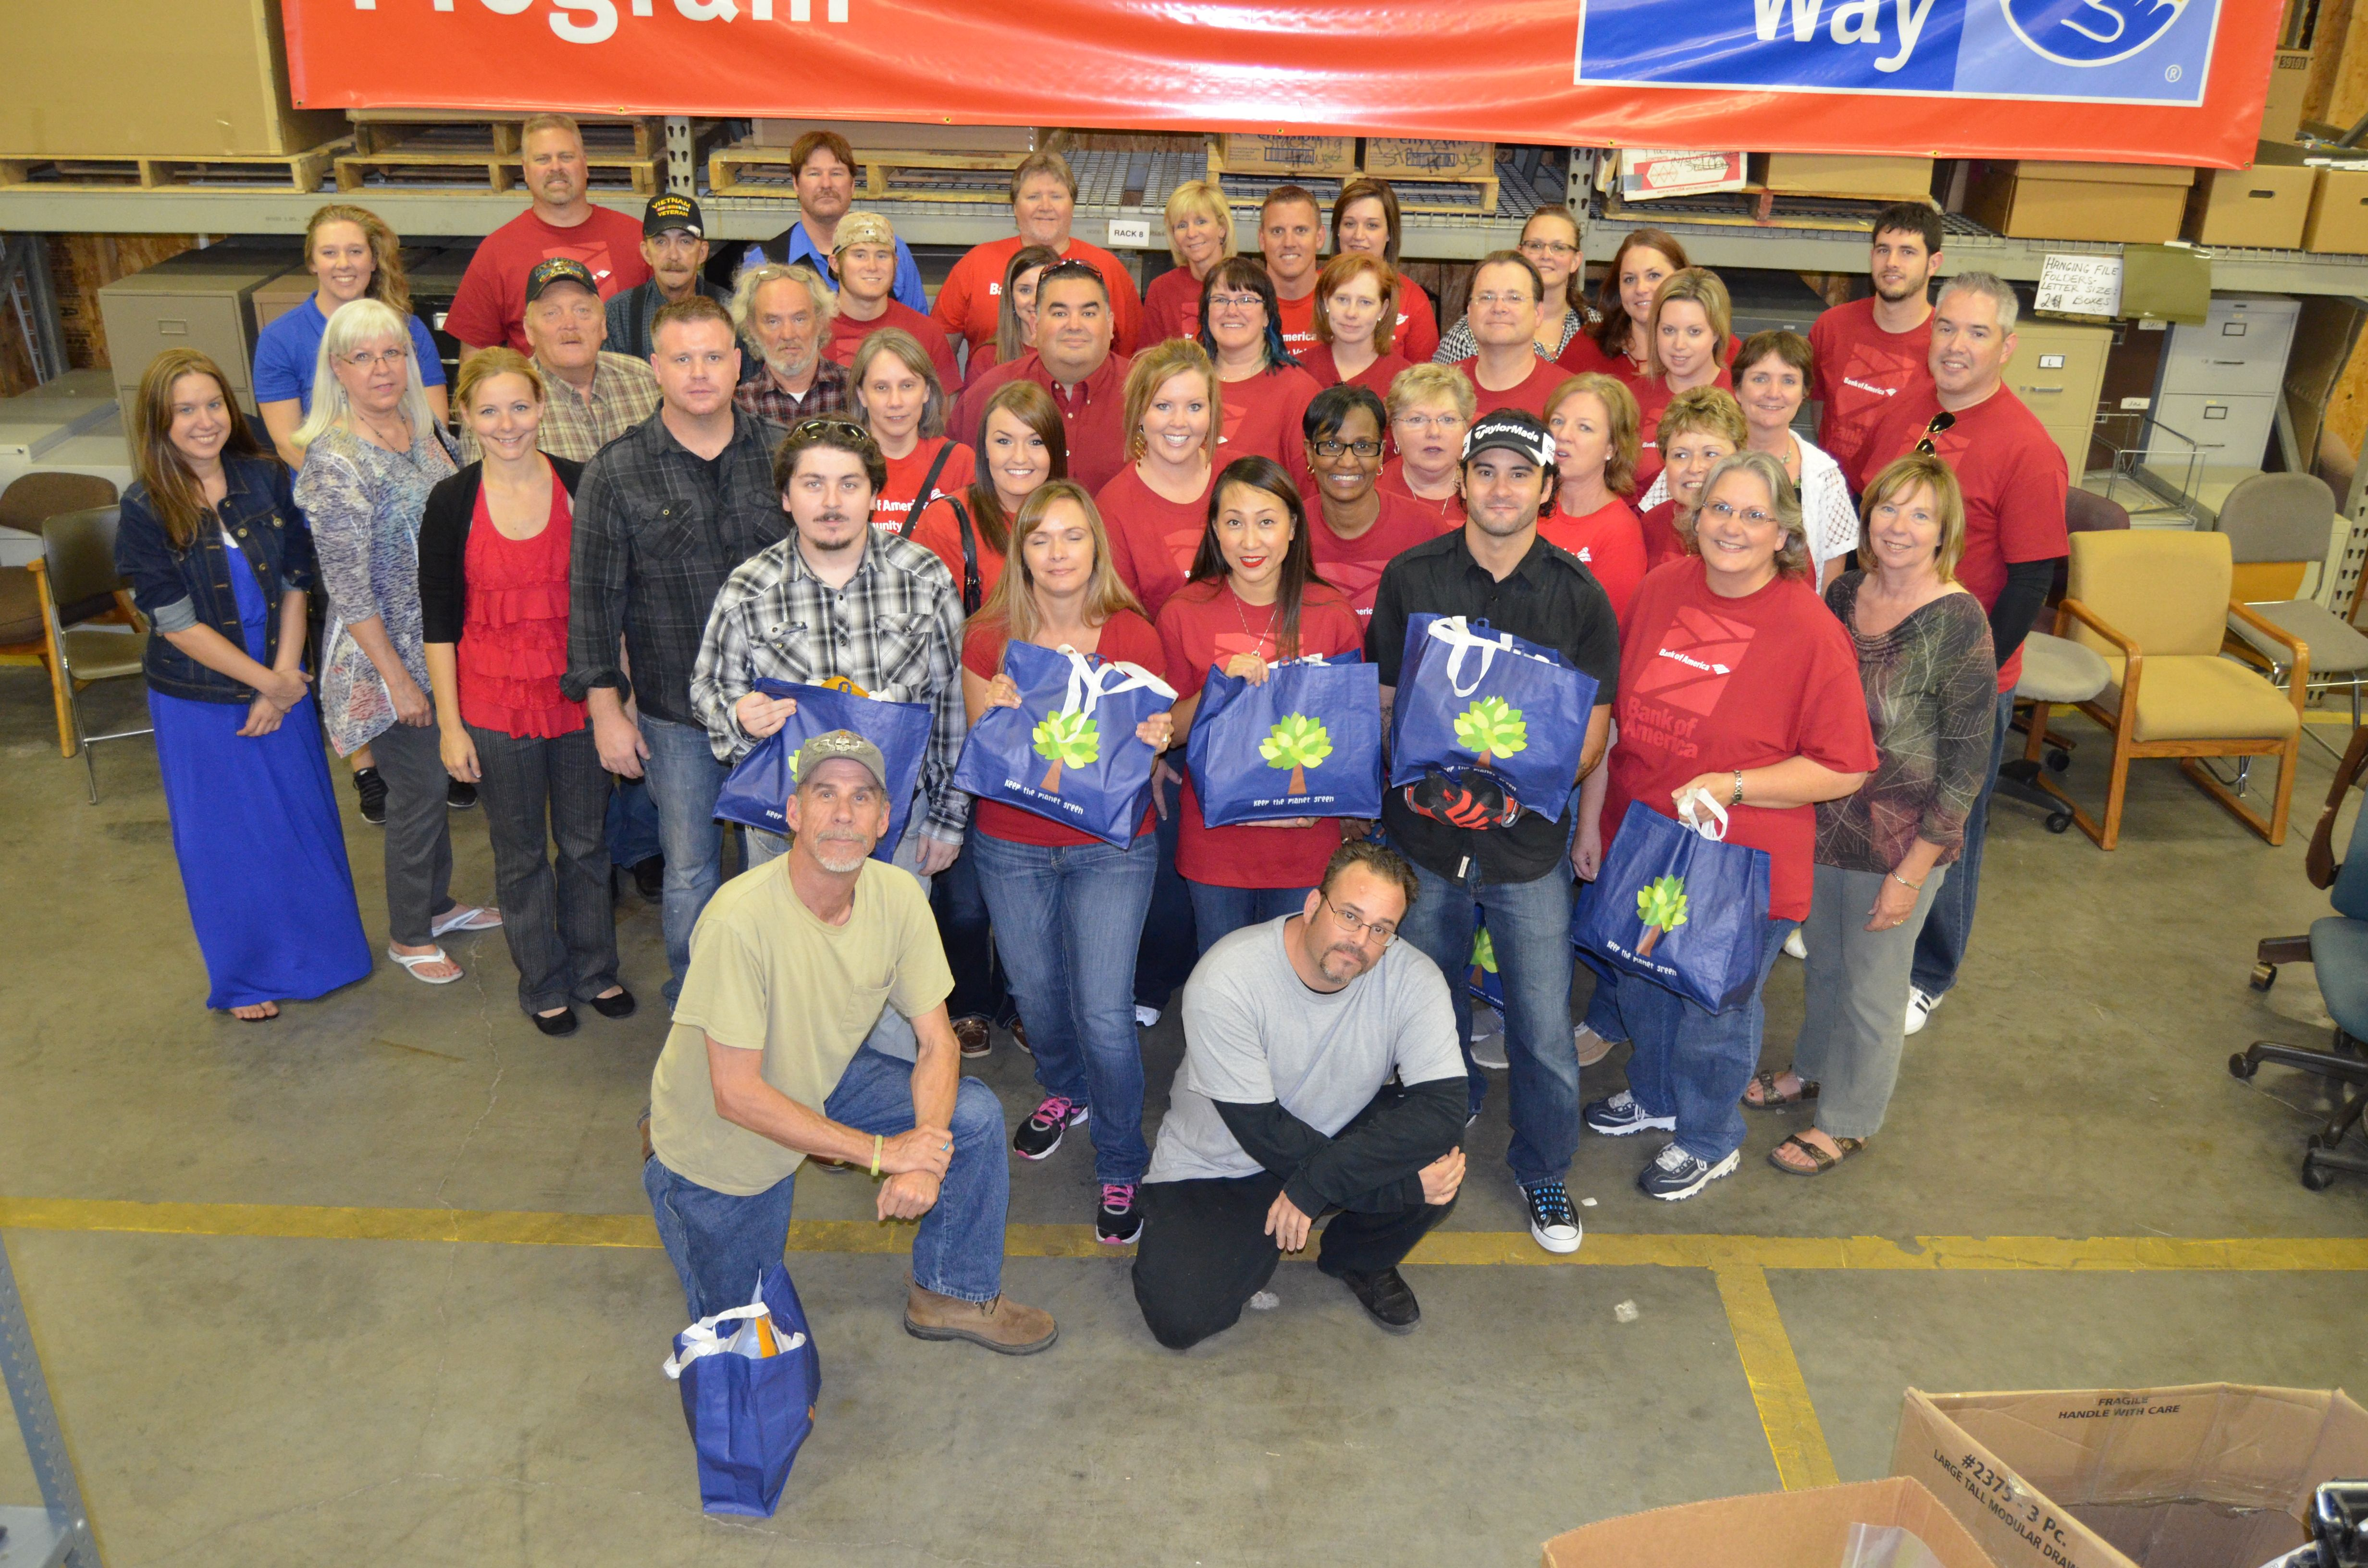 MHA Participates in National Day of Service and Remembrance Project